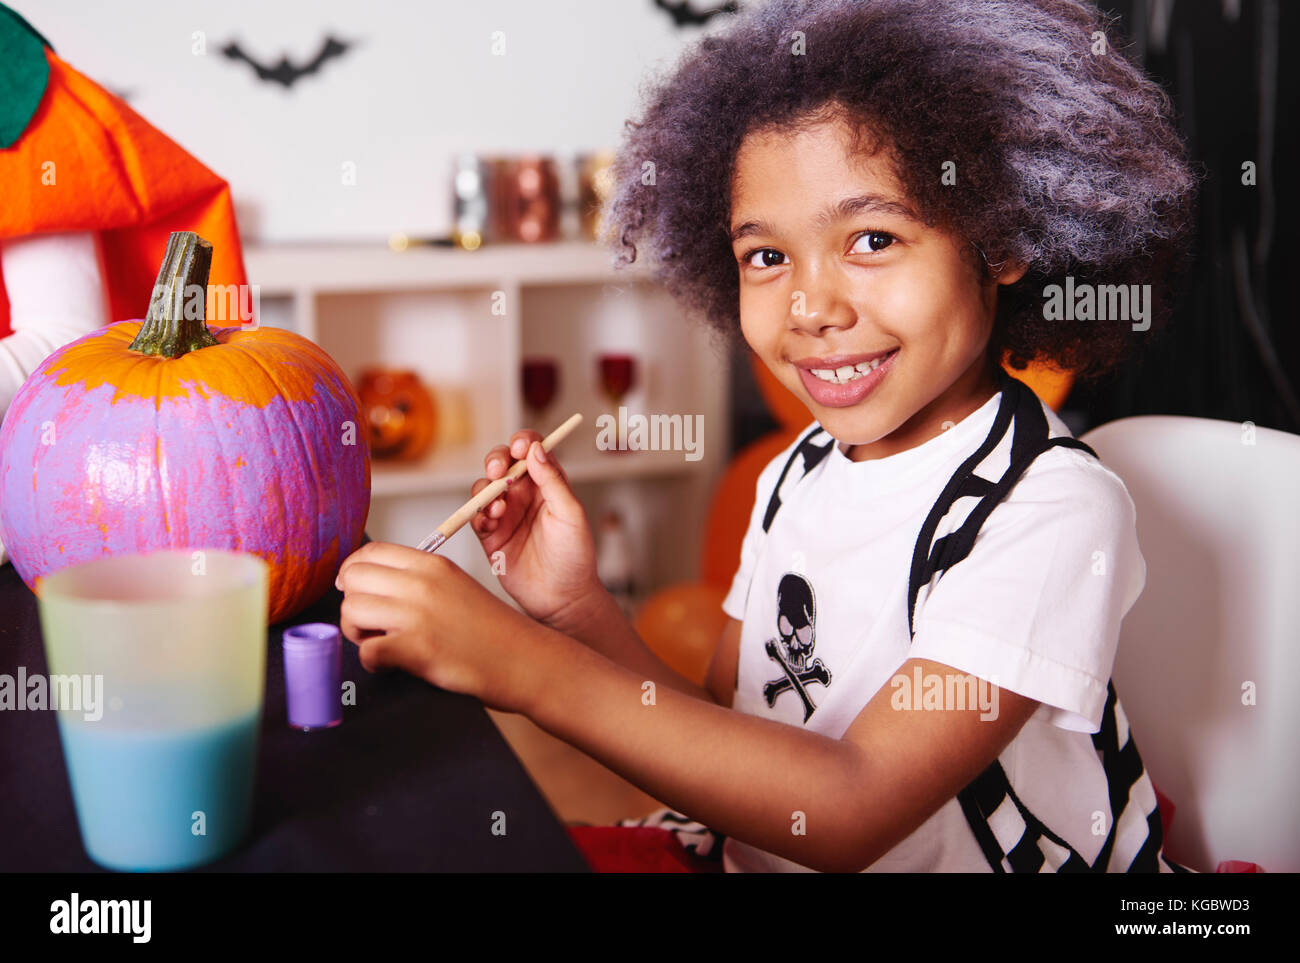 She love painting pumpkins for halloween - Stock Image